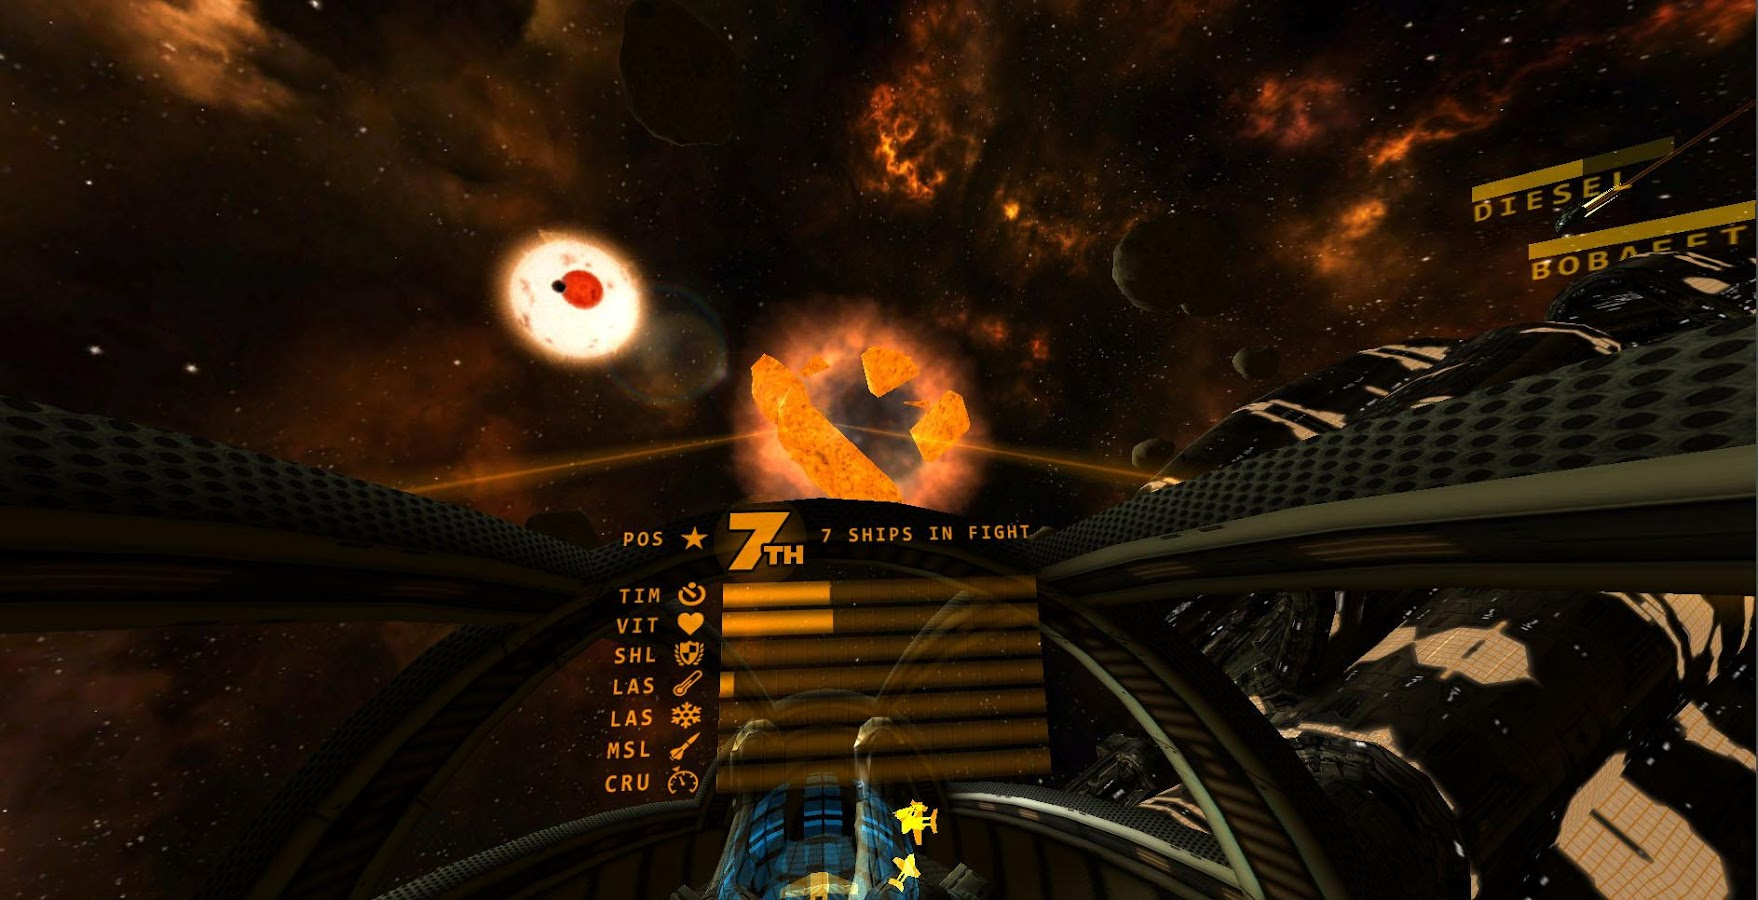 Galaxy VR Virtual Reality Game Screenshot 1